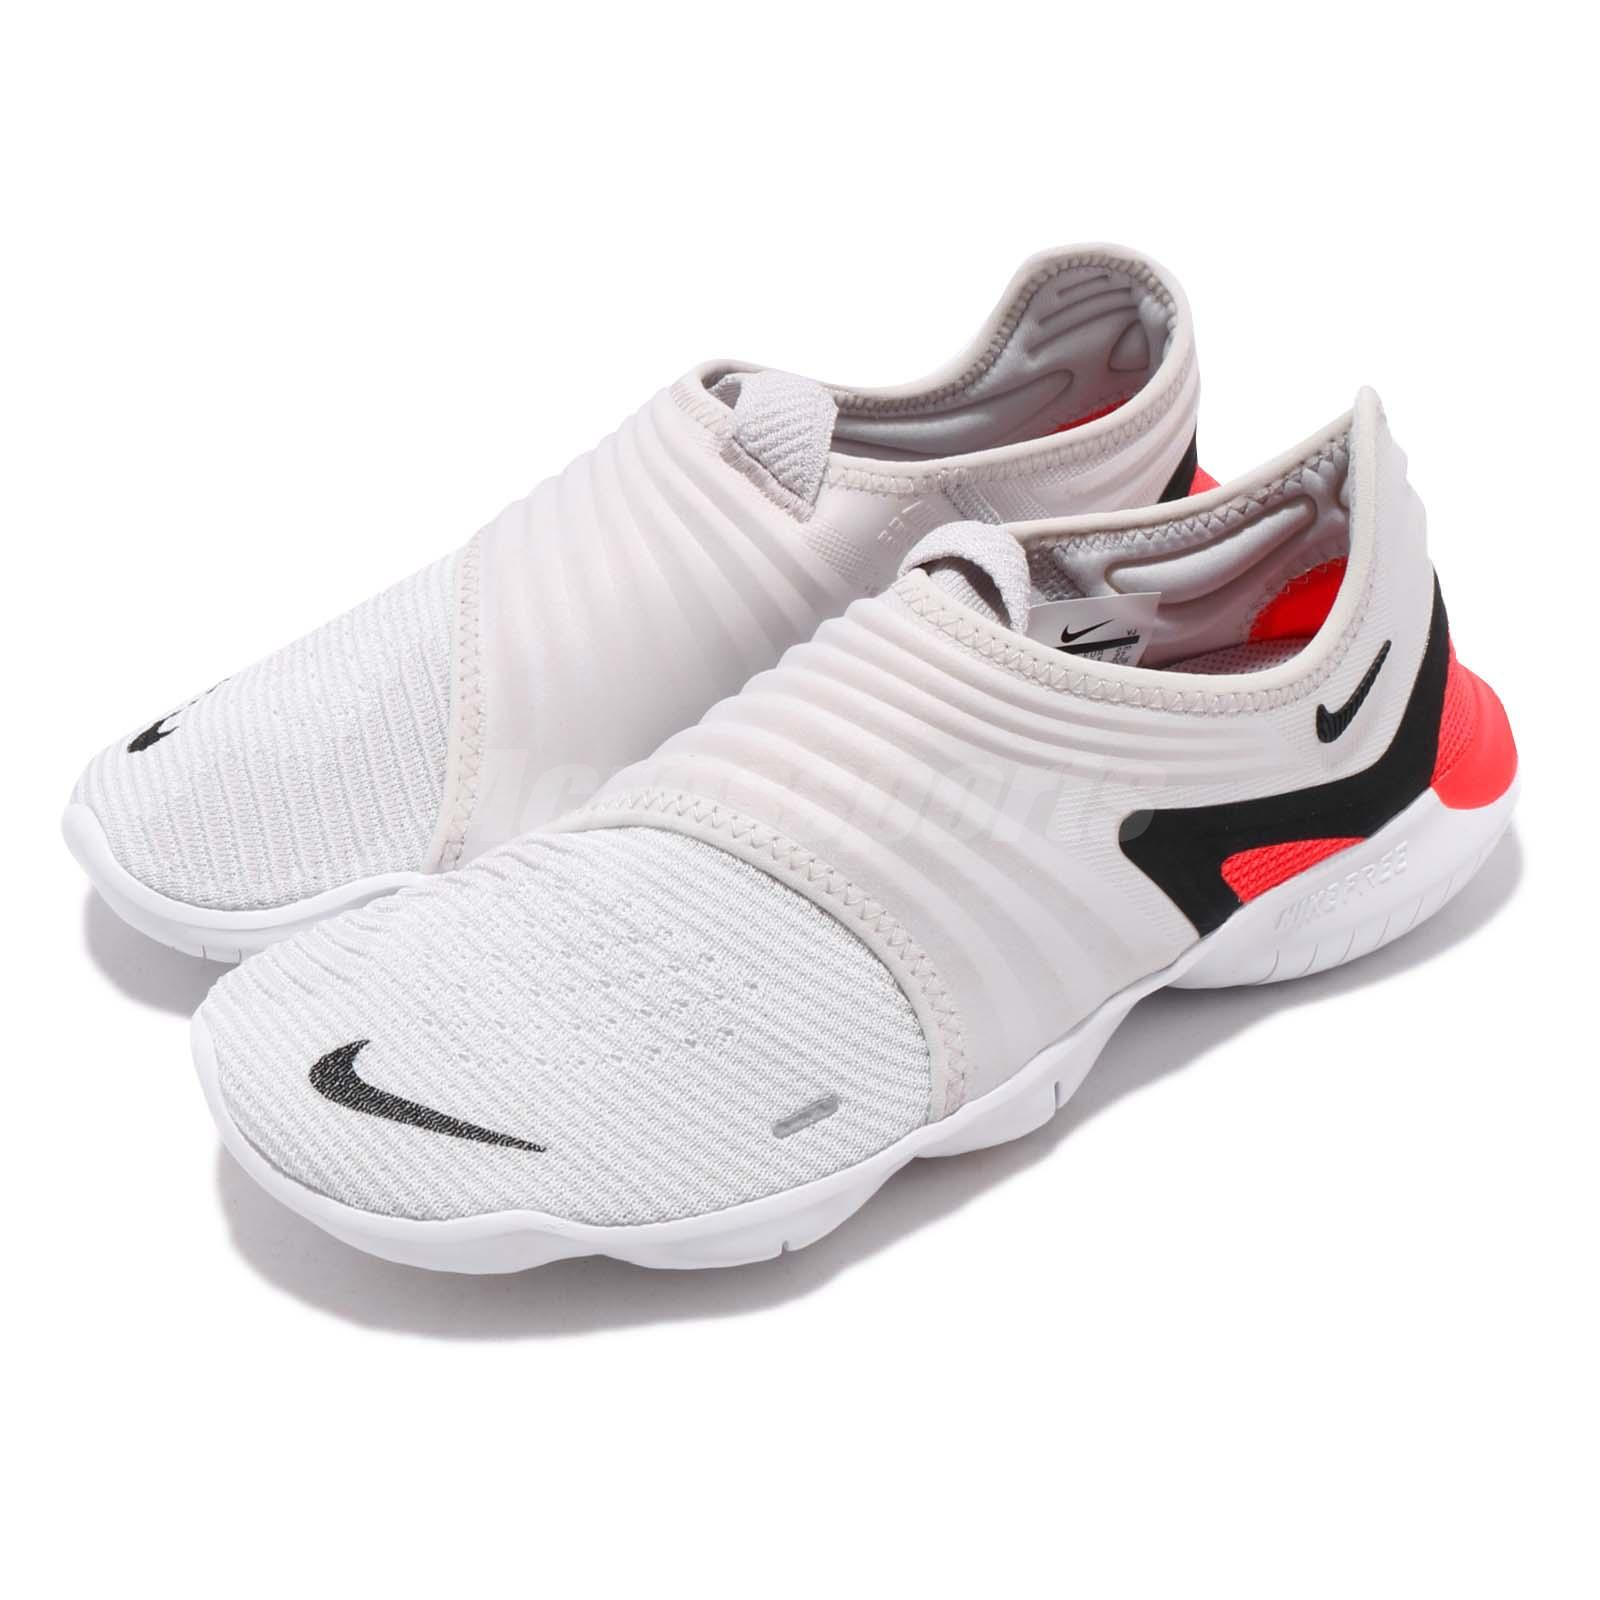 450fc645e447 Details about Nike Free RN Flyknit 3.0 Grey Black White Red Men Running  Shoes AQ5707-002